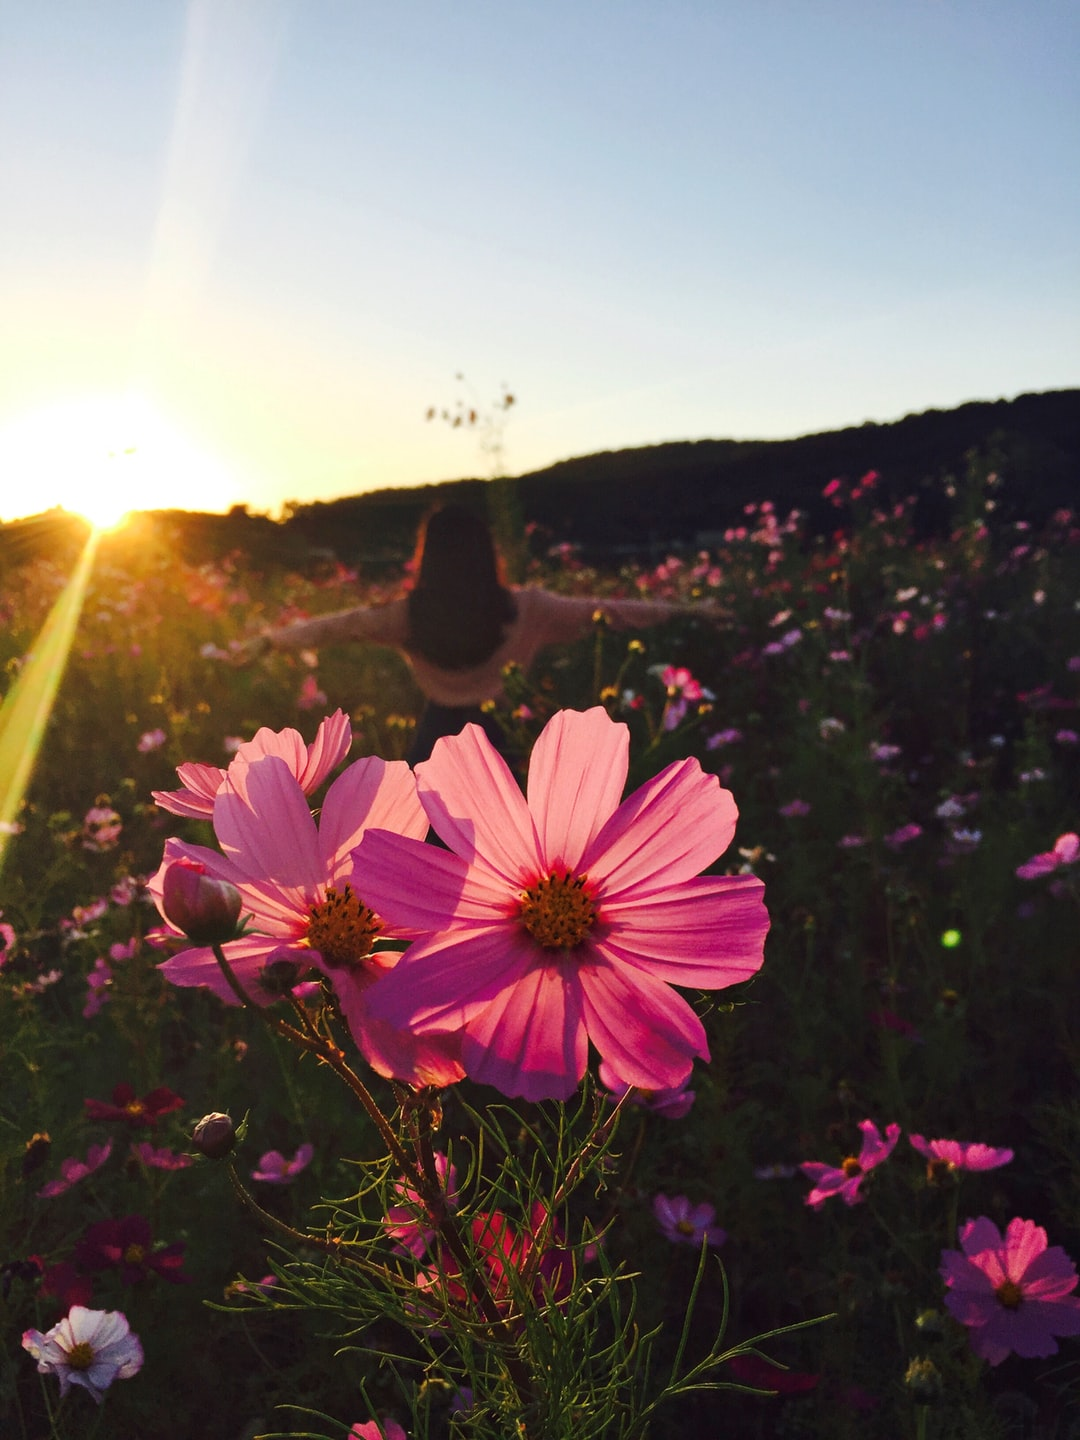 Dancing in the meadow at dusk